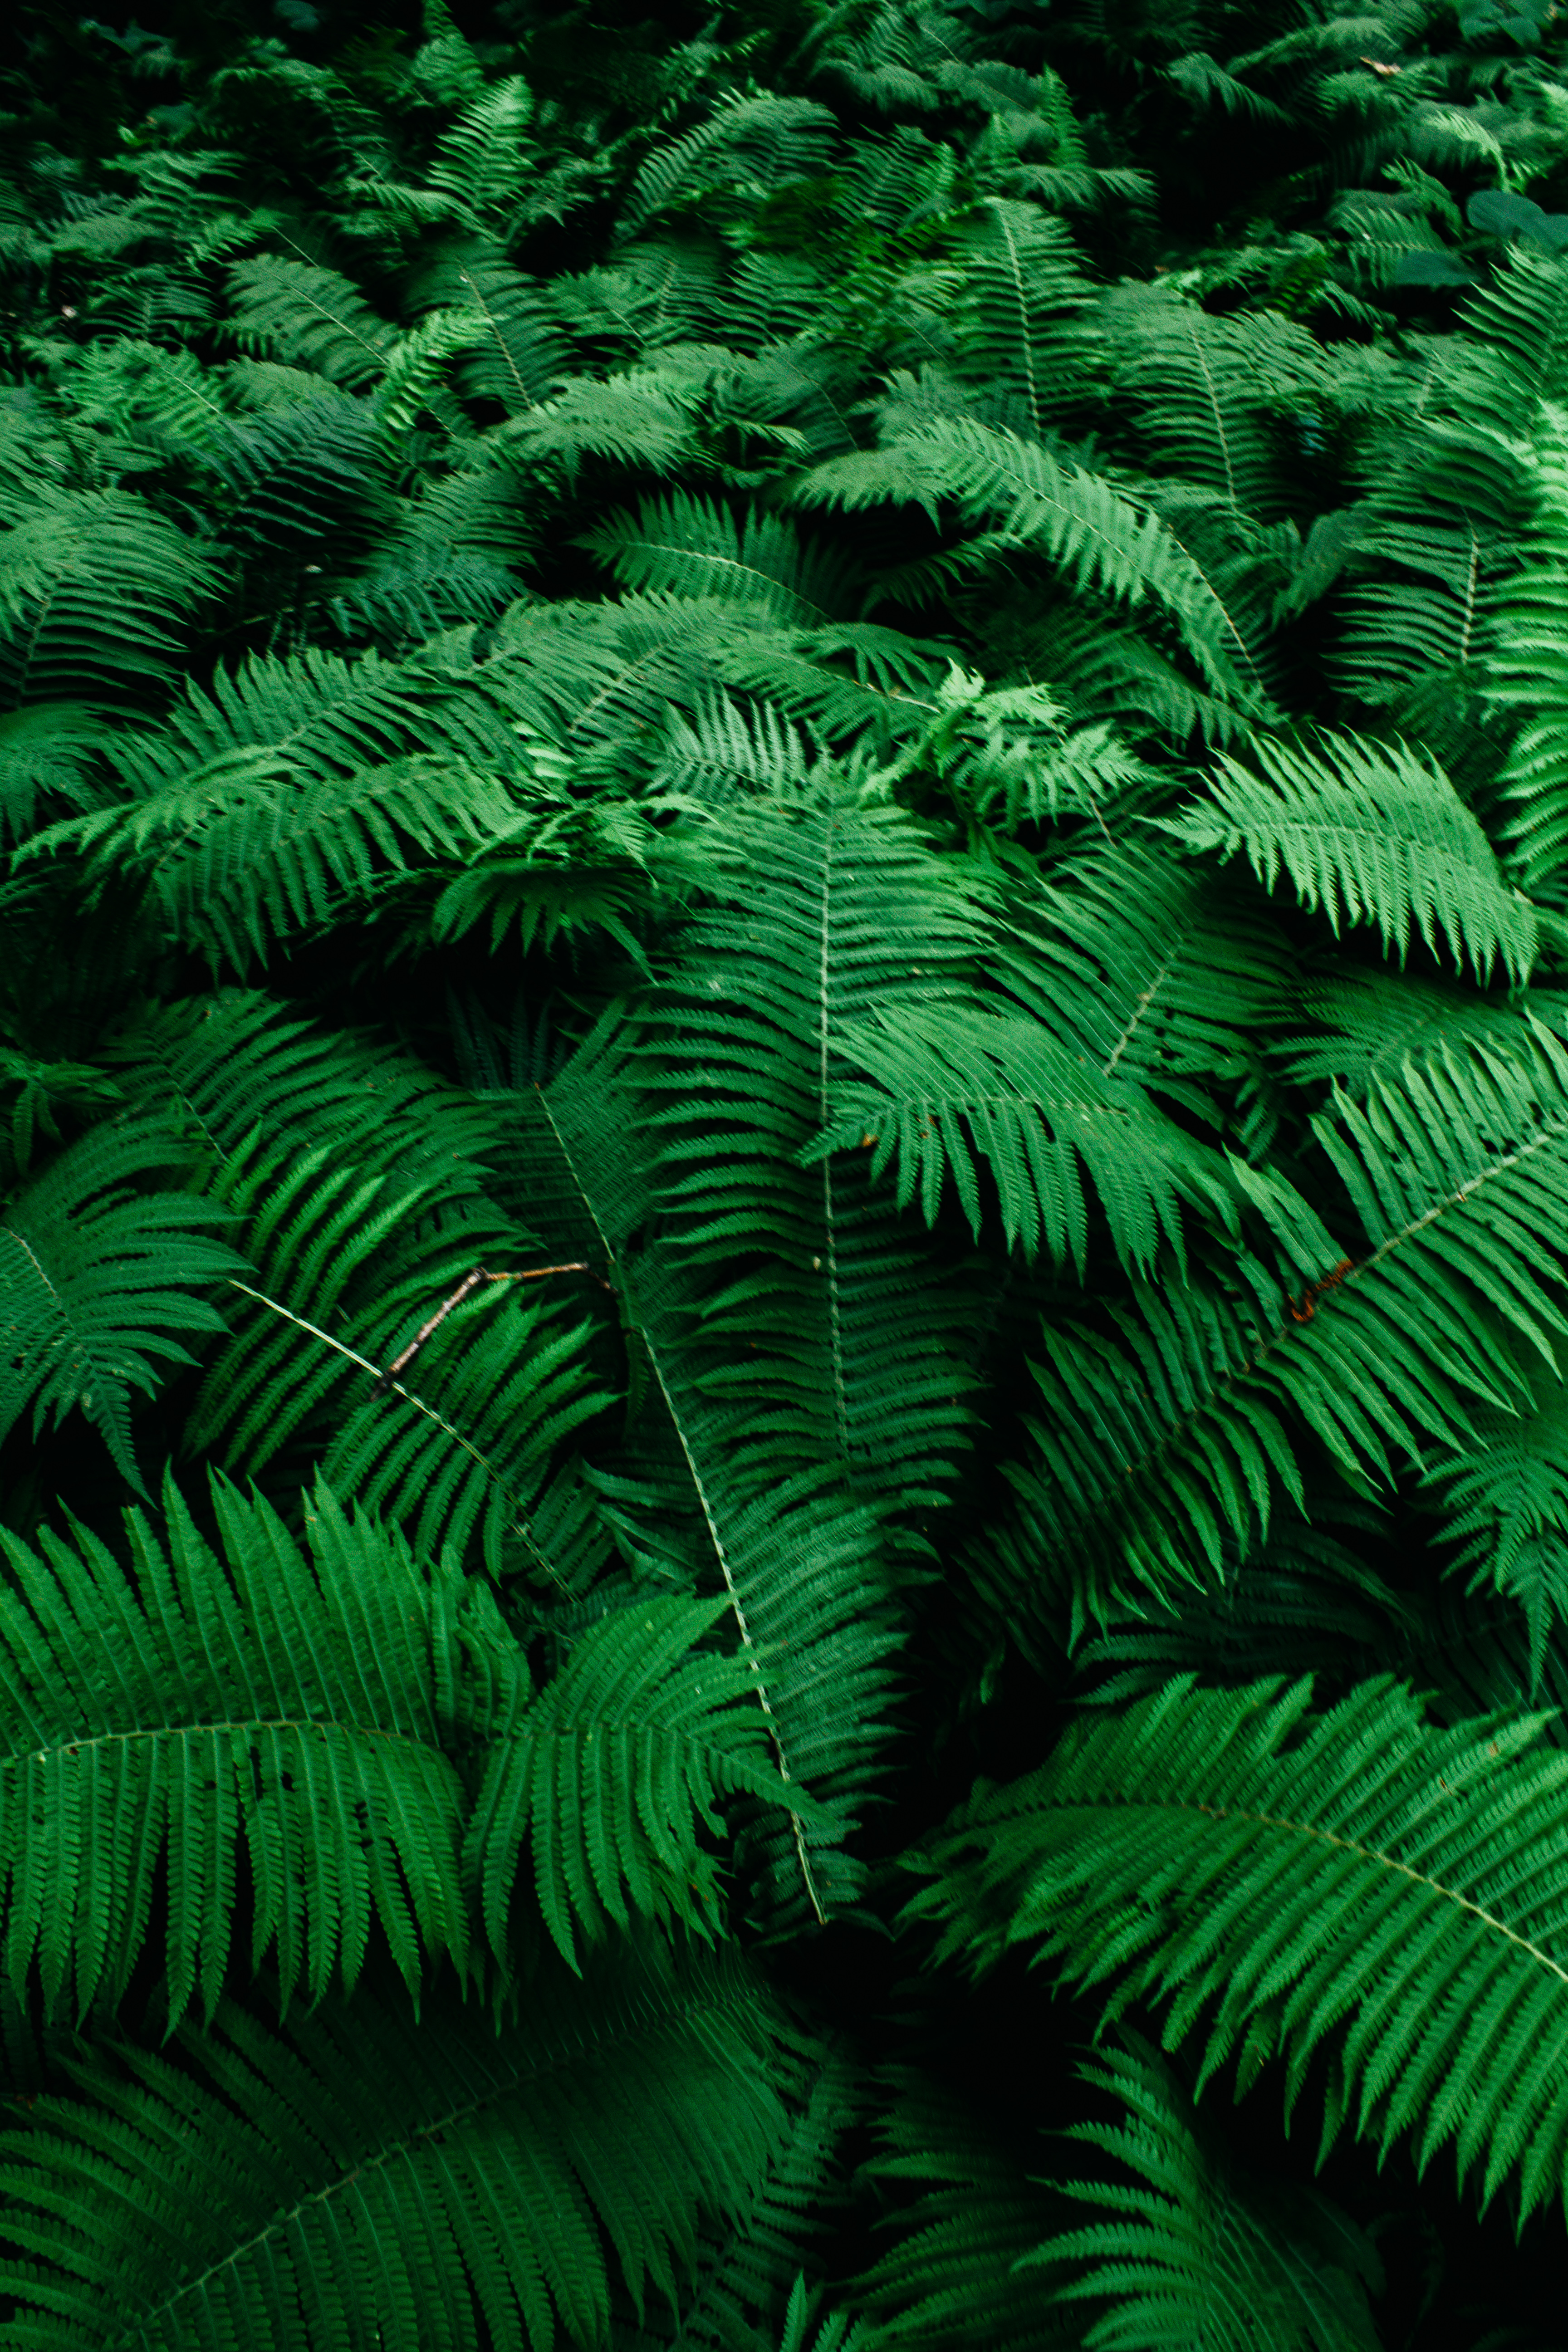 Close-up Photo of Green Fern Plants